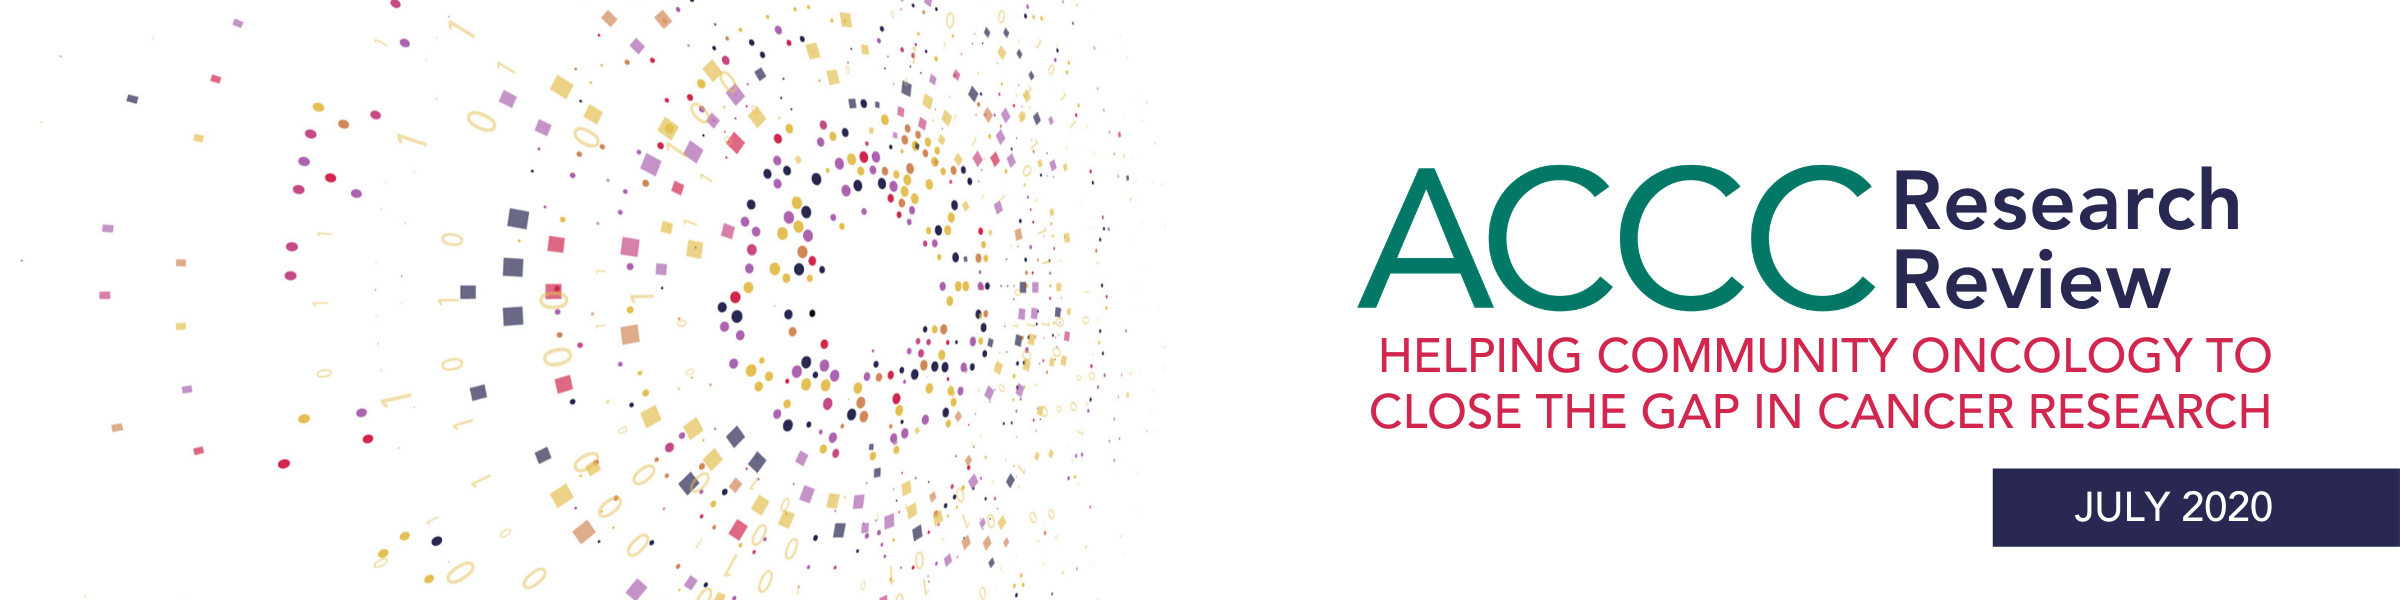 ACCC Research Review Banner: July 2020